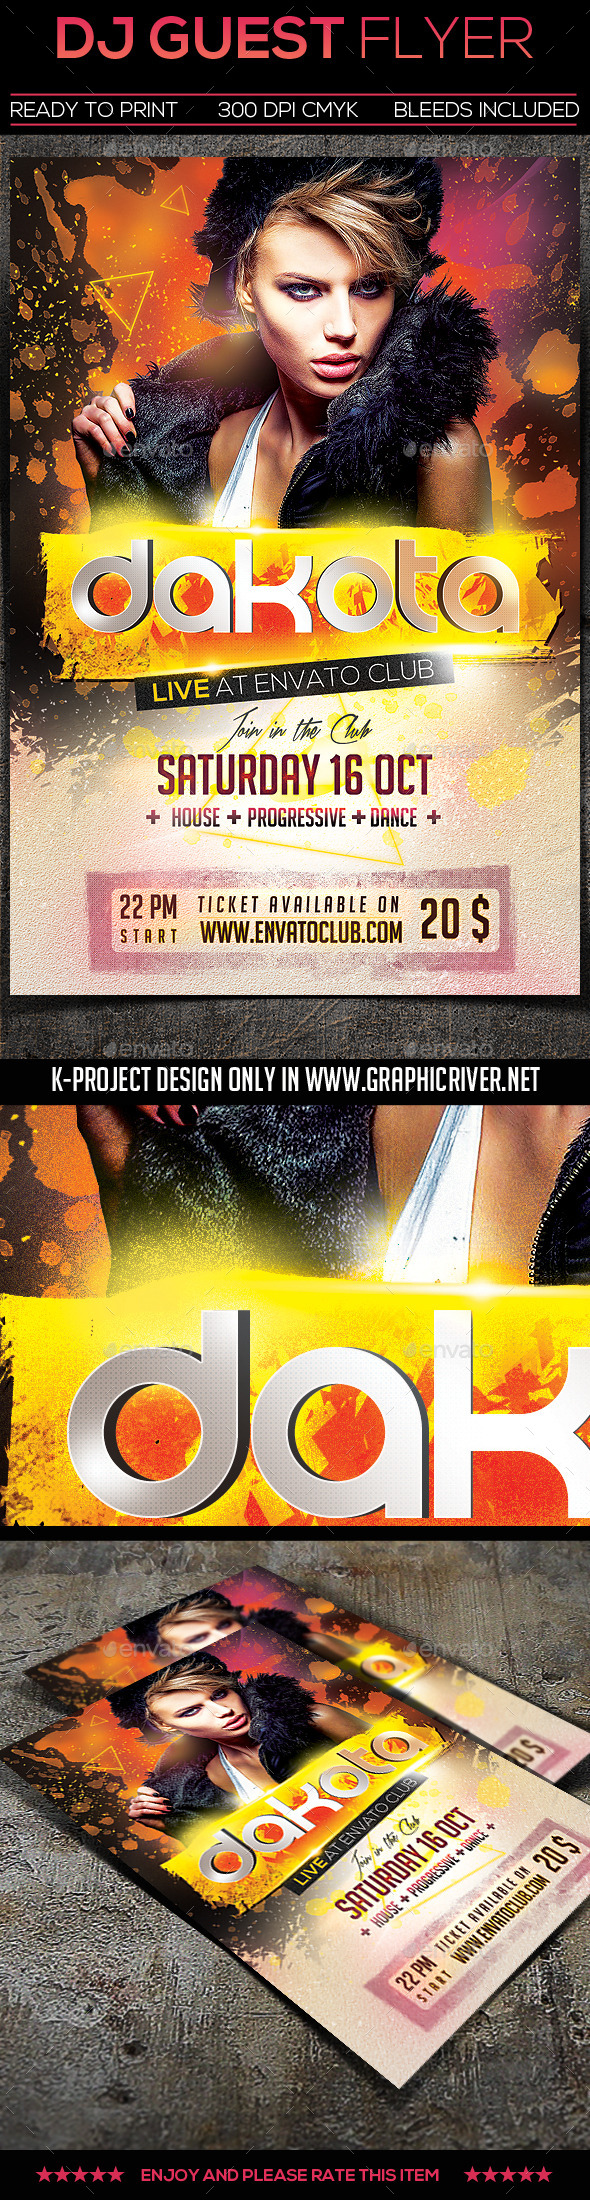 GraphicRiver Guest DJ Flyer 11025571